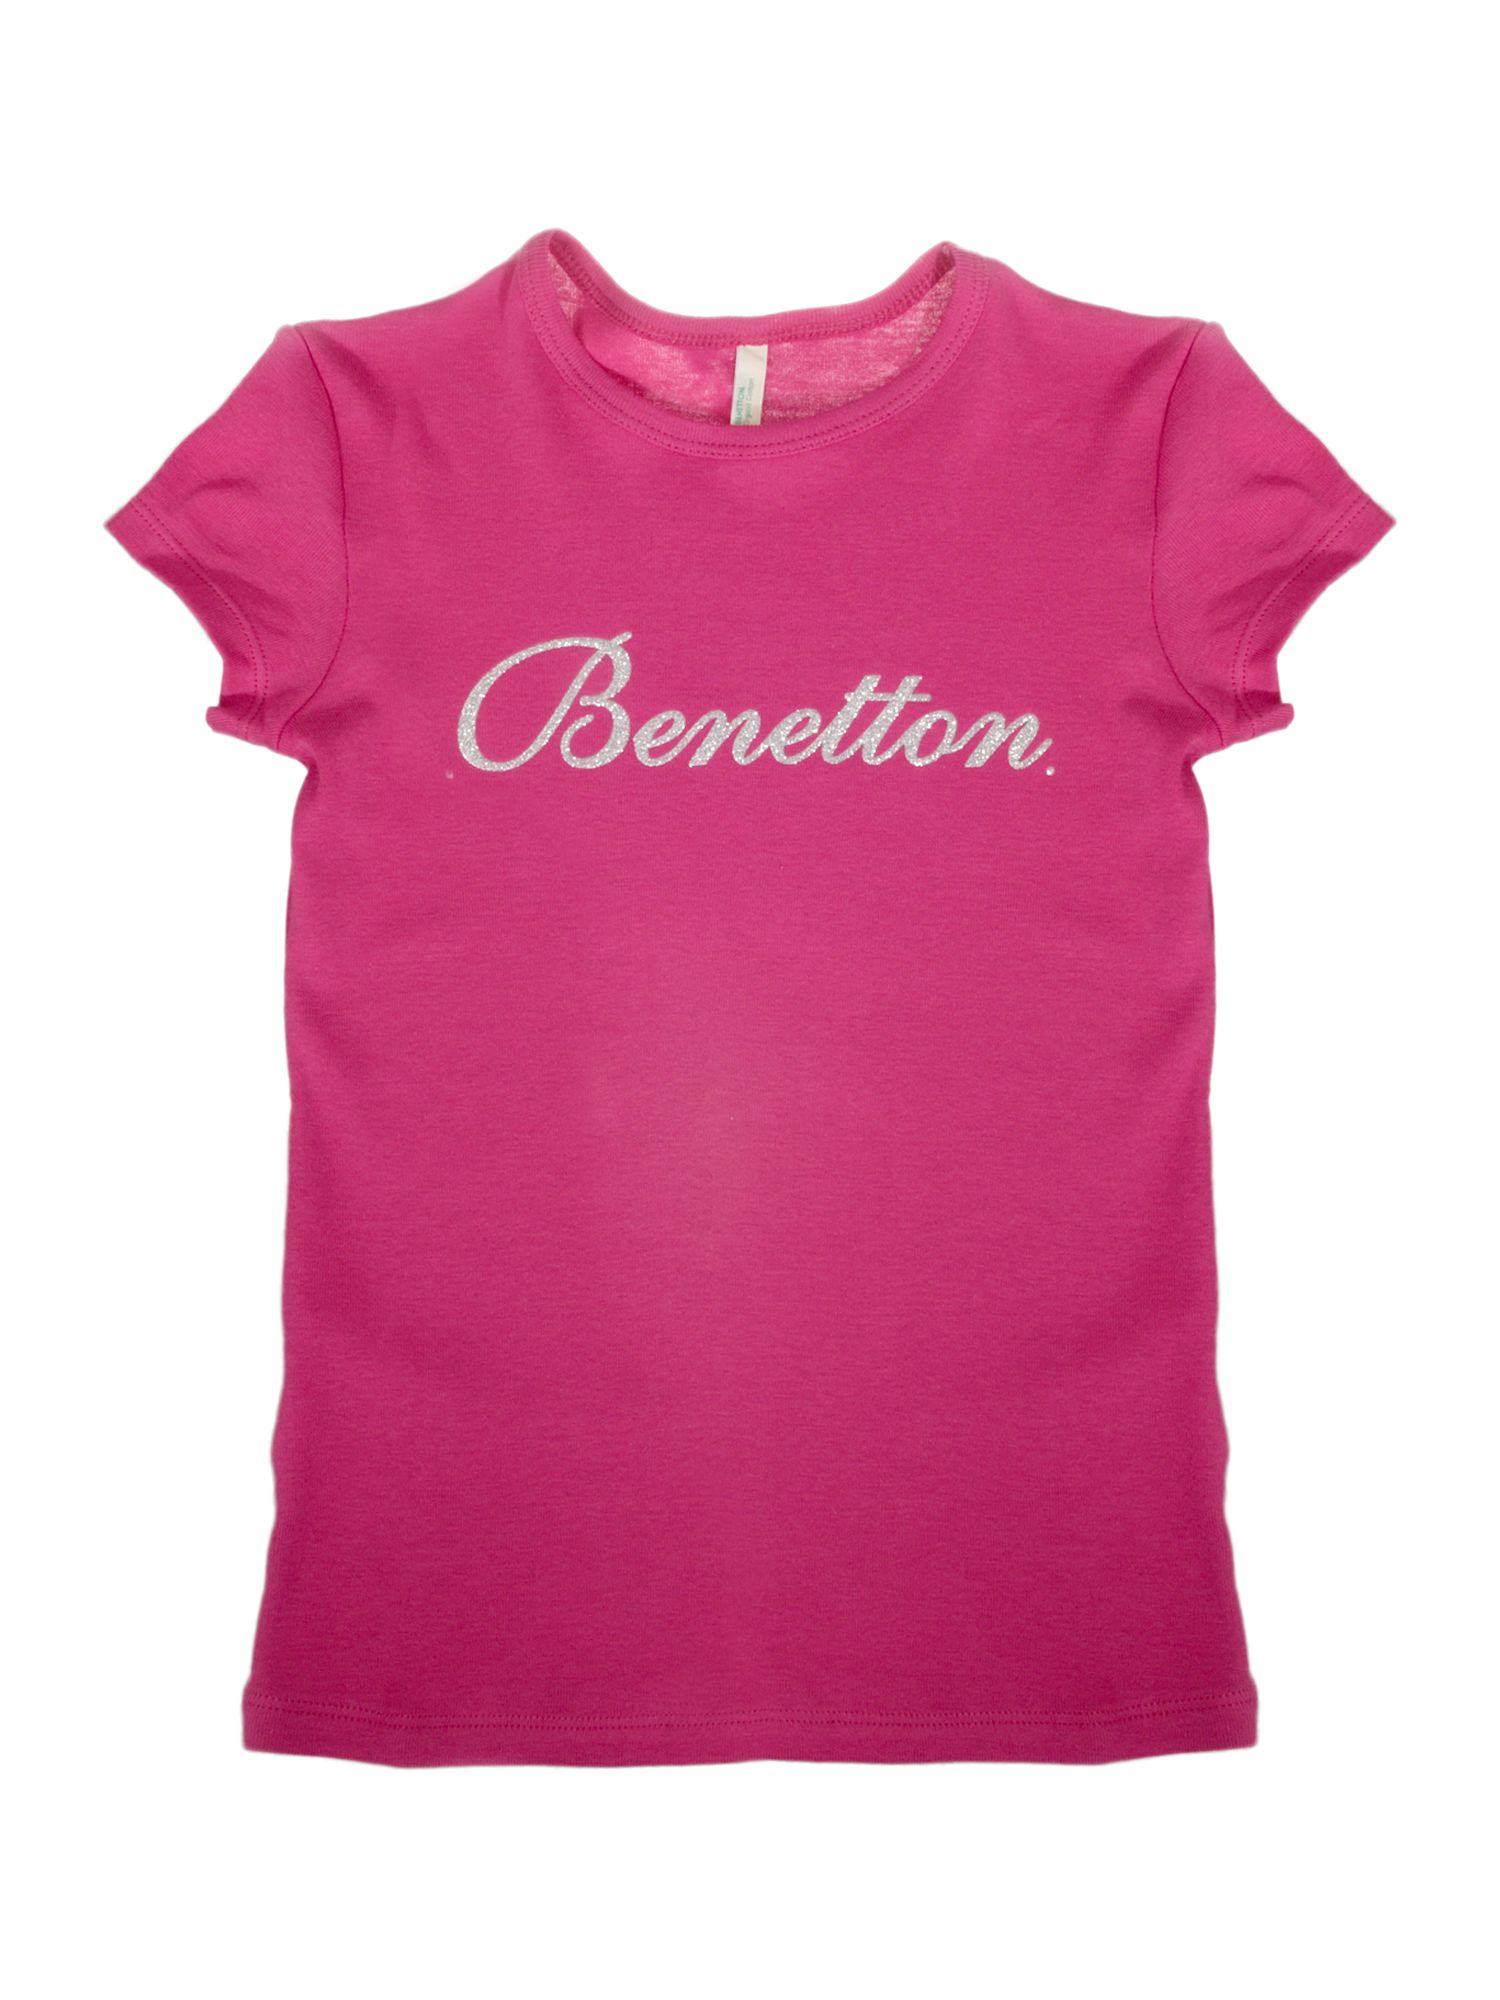 Benetton Short-sleeved logo crew neck T-shirt Pink product image